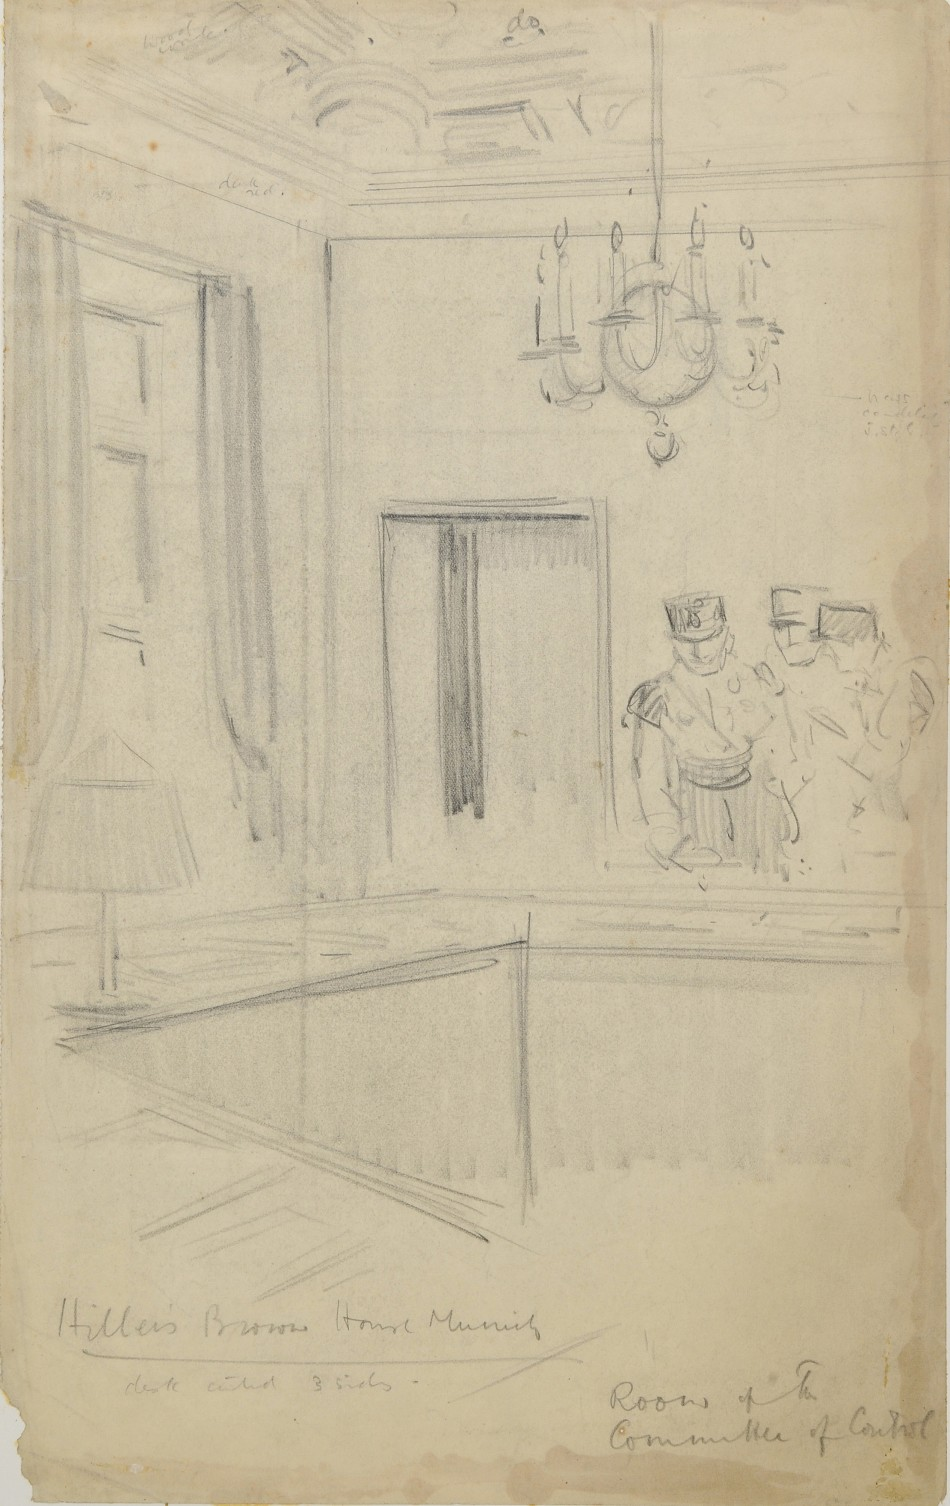 This drawing by Helen McKie shows Nazi officials inside a committee room at Hitler's Munich headquarters